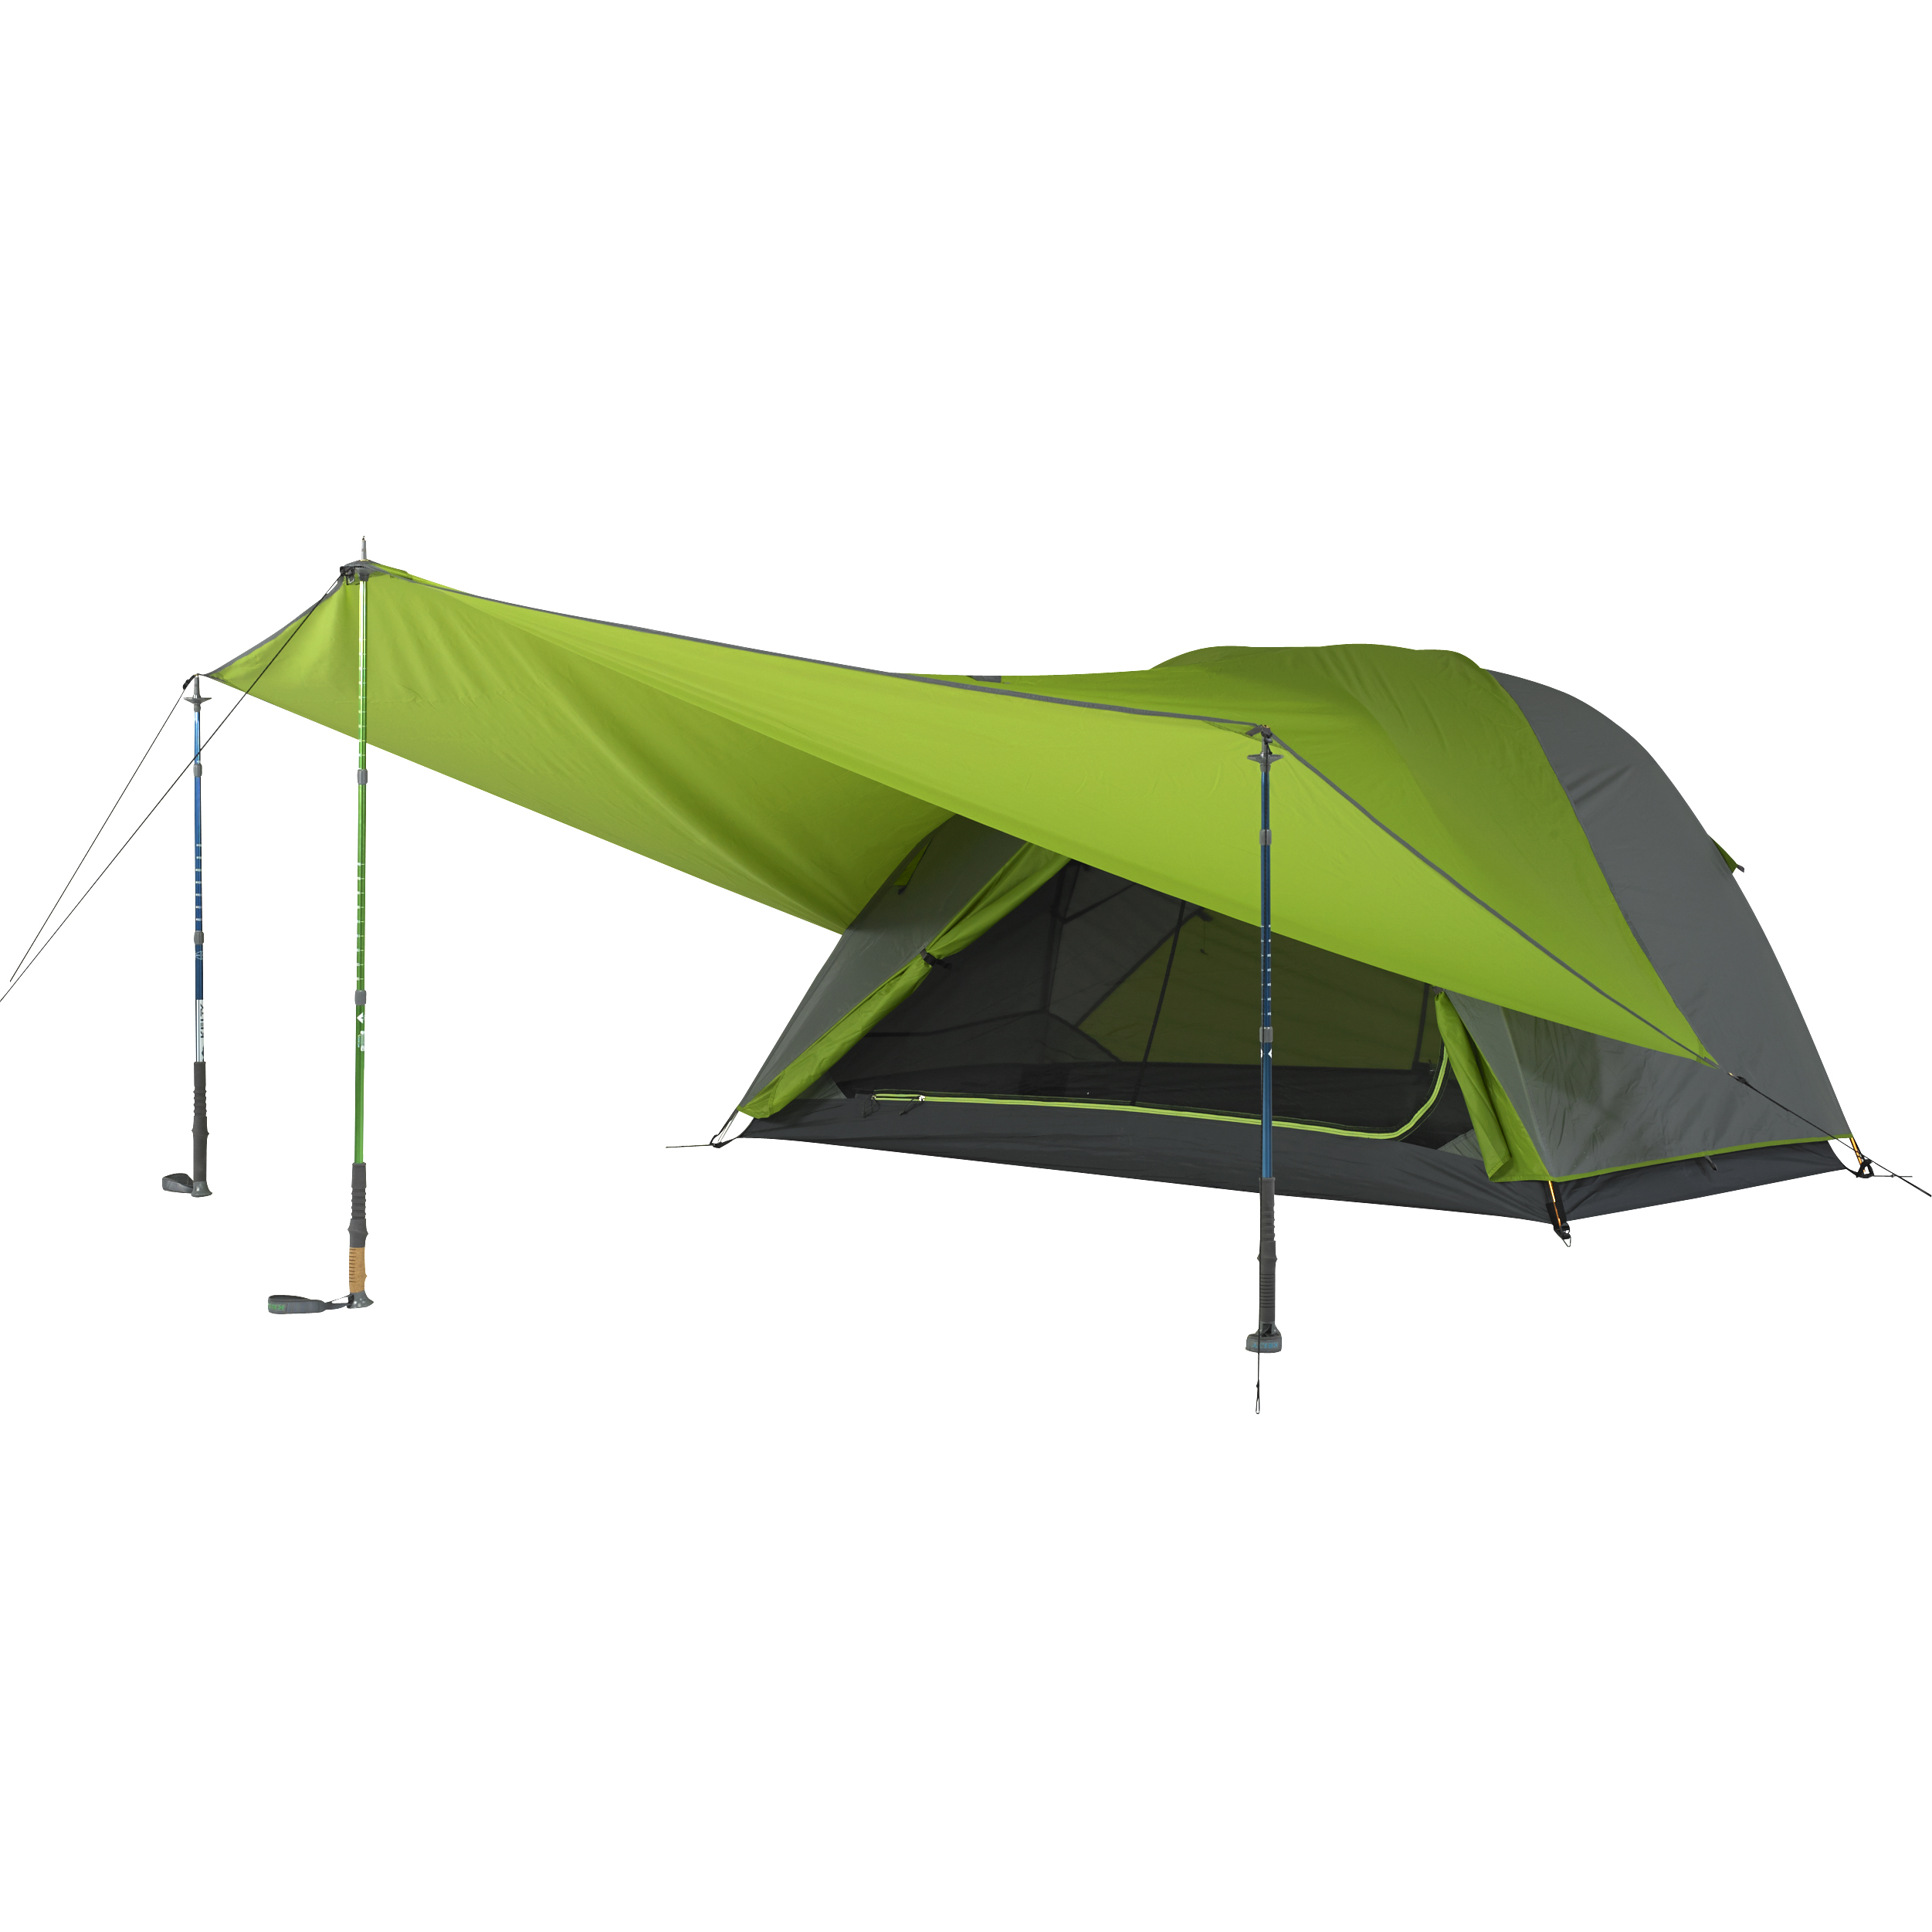 469c0da86f7 Tent and Camping Outfitter NC